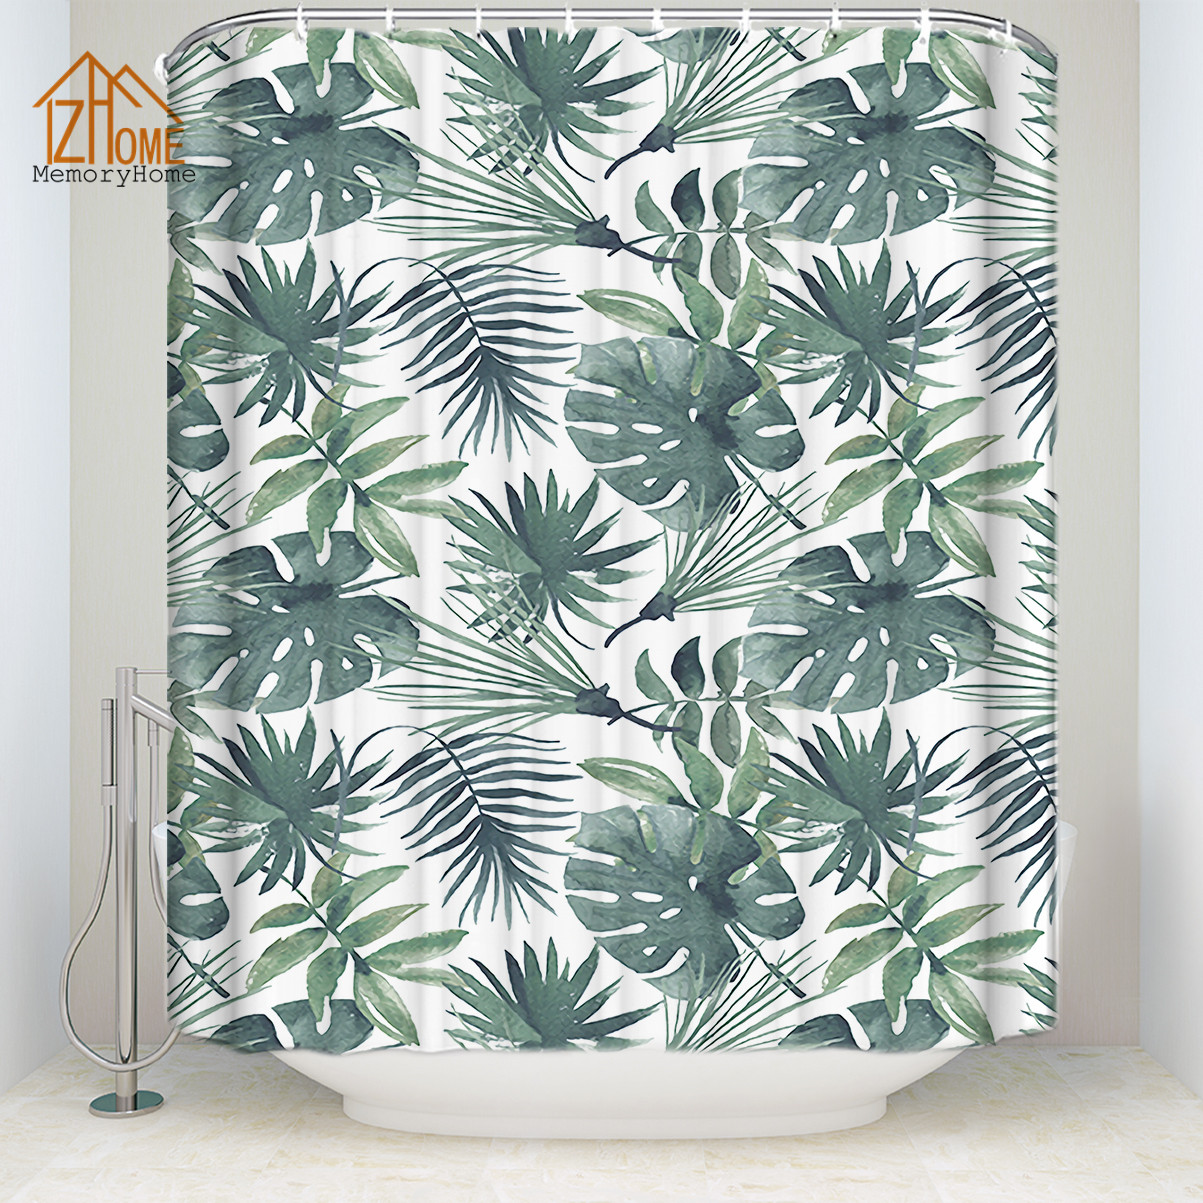 Memory Home Fresh Banana Leaves Shower Curtain Waterproof Polyester ...